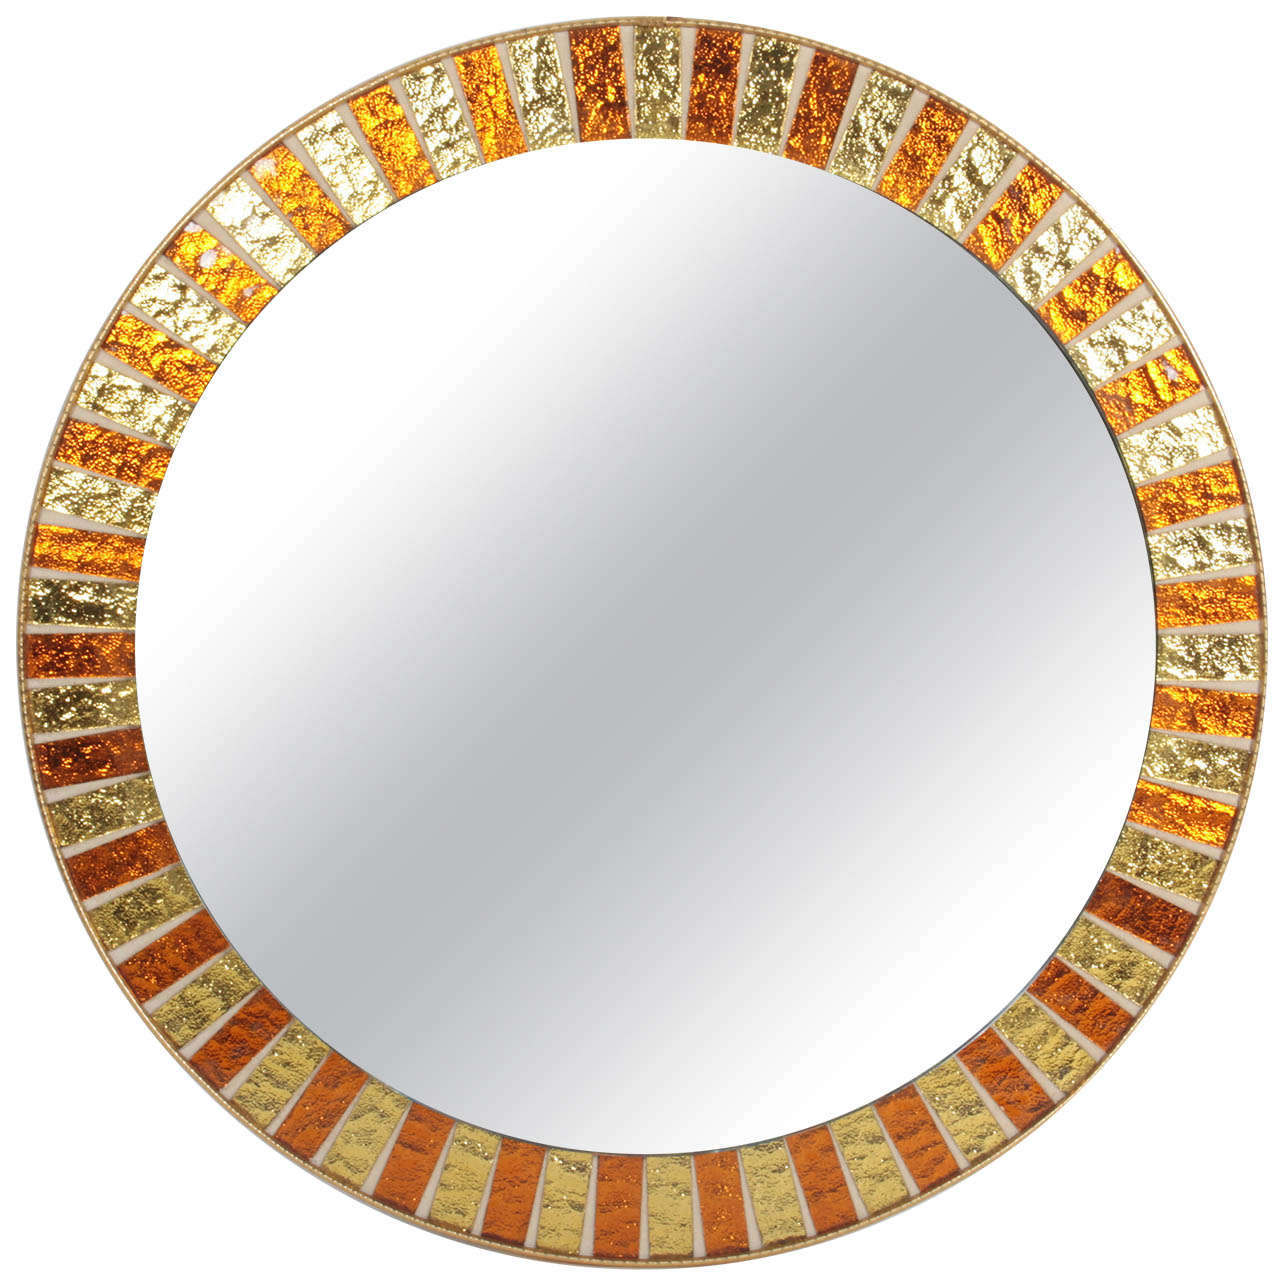 1960s copper and gold mosaic mirror for sale at 1stdibs for Mosaic mirror